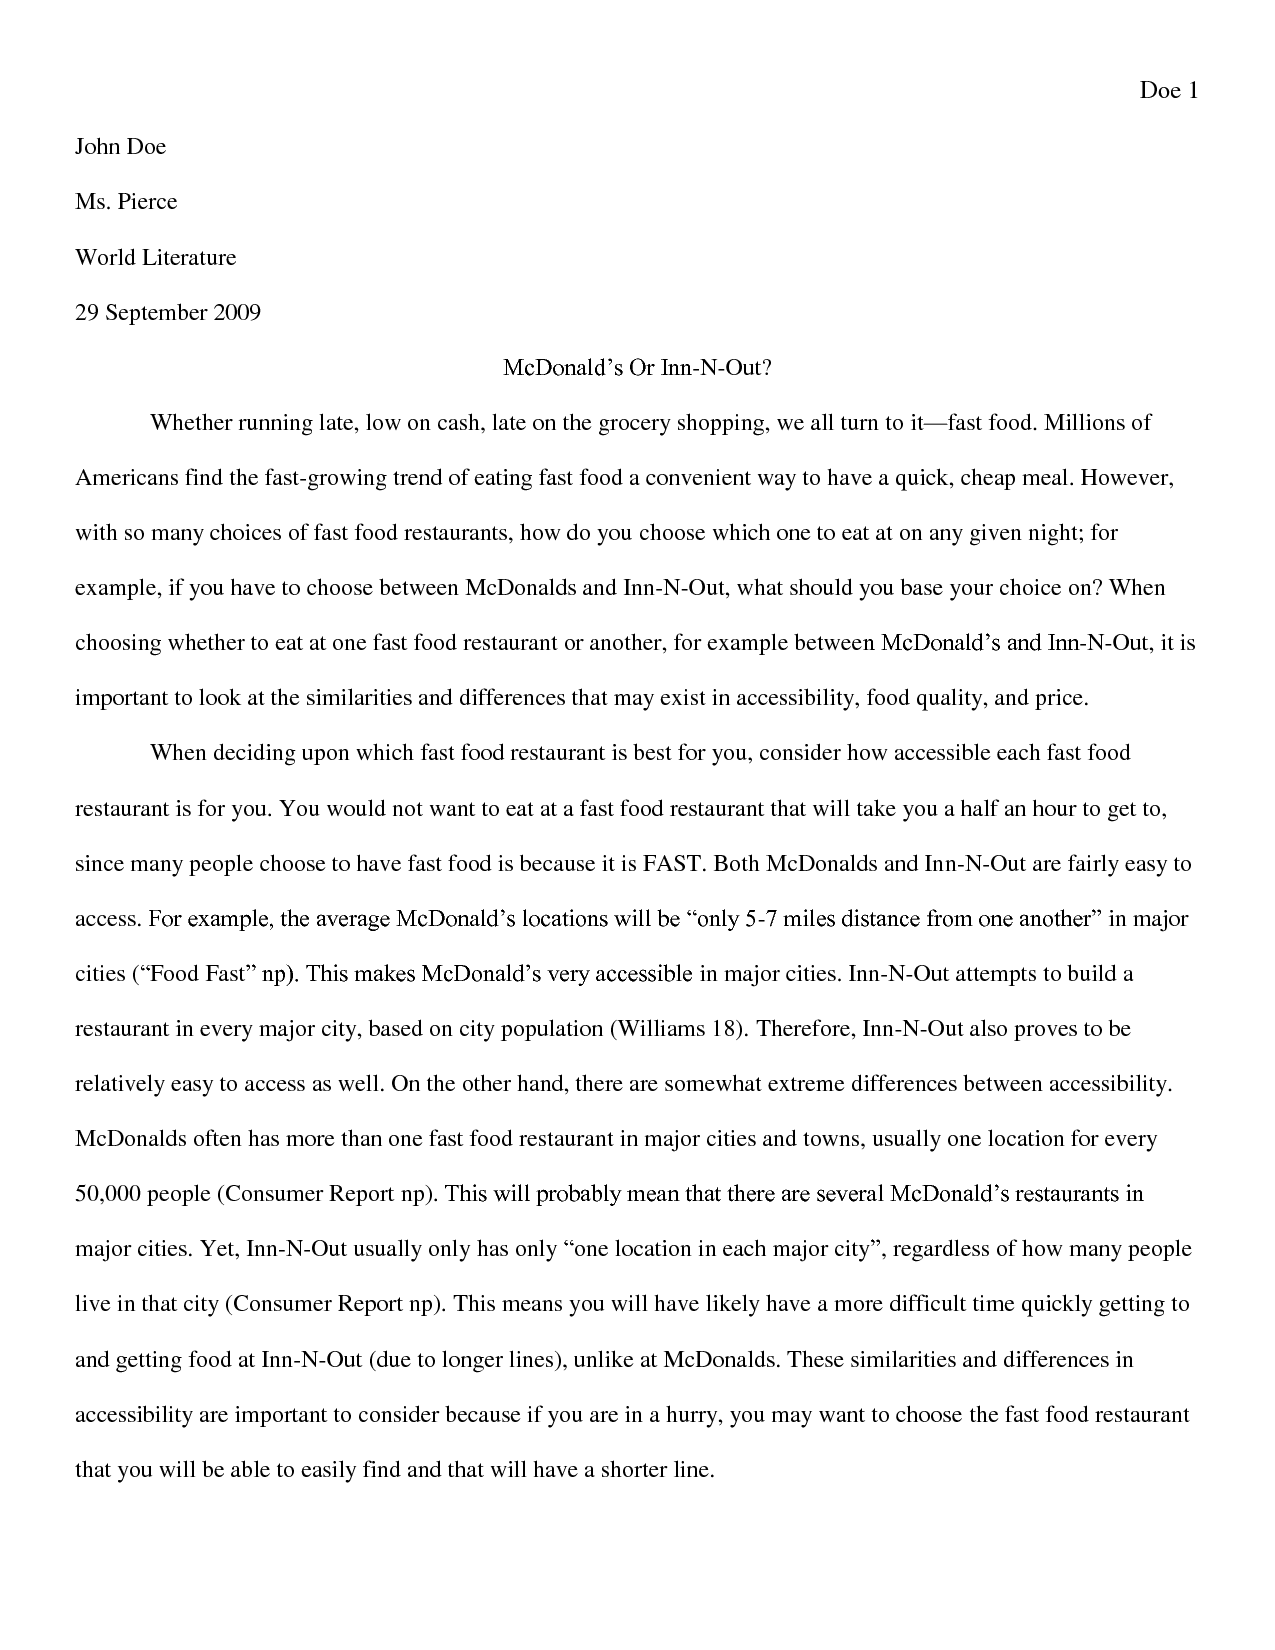 006 High School Essay Sample Papers 526023 On Excellent Preventing Shootings Uniforms Conclusion Uniform Full